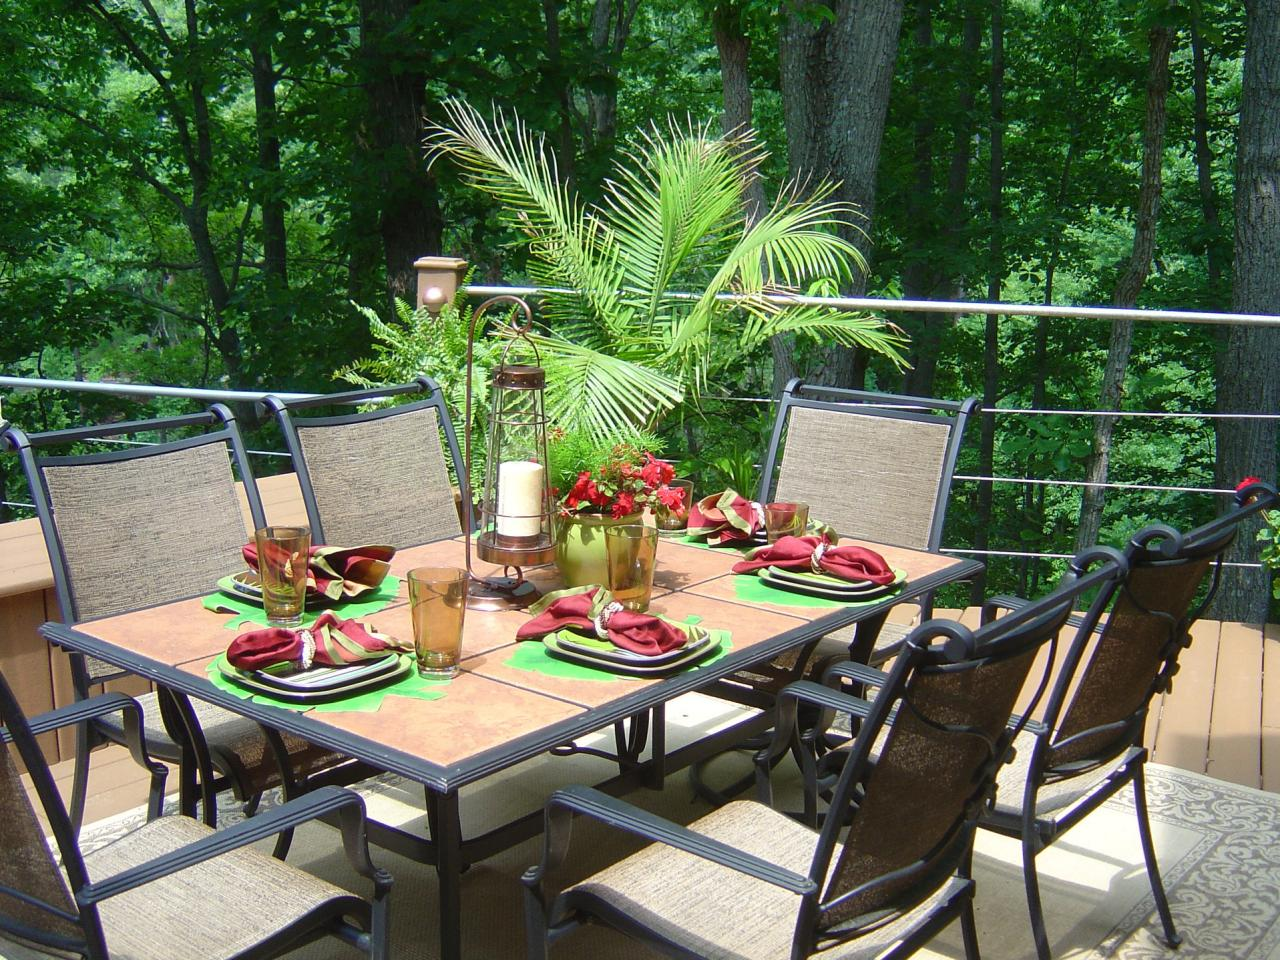 Outdoor entertaining tips for summer hgtv for Small dining table decor ideas